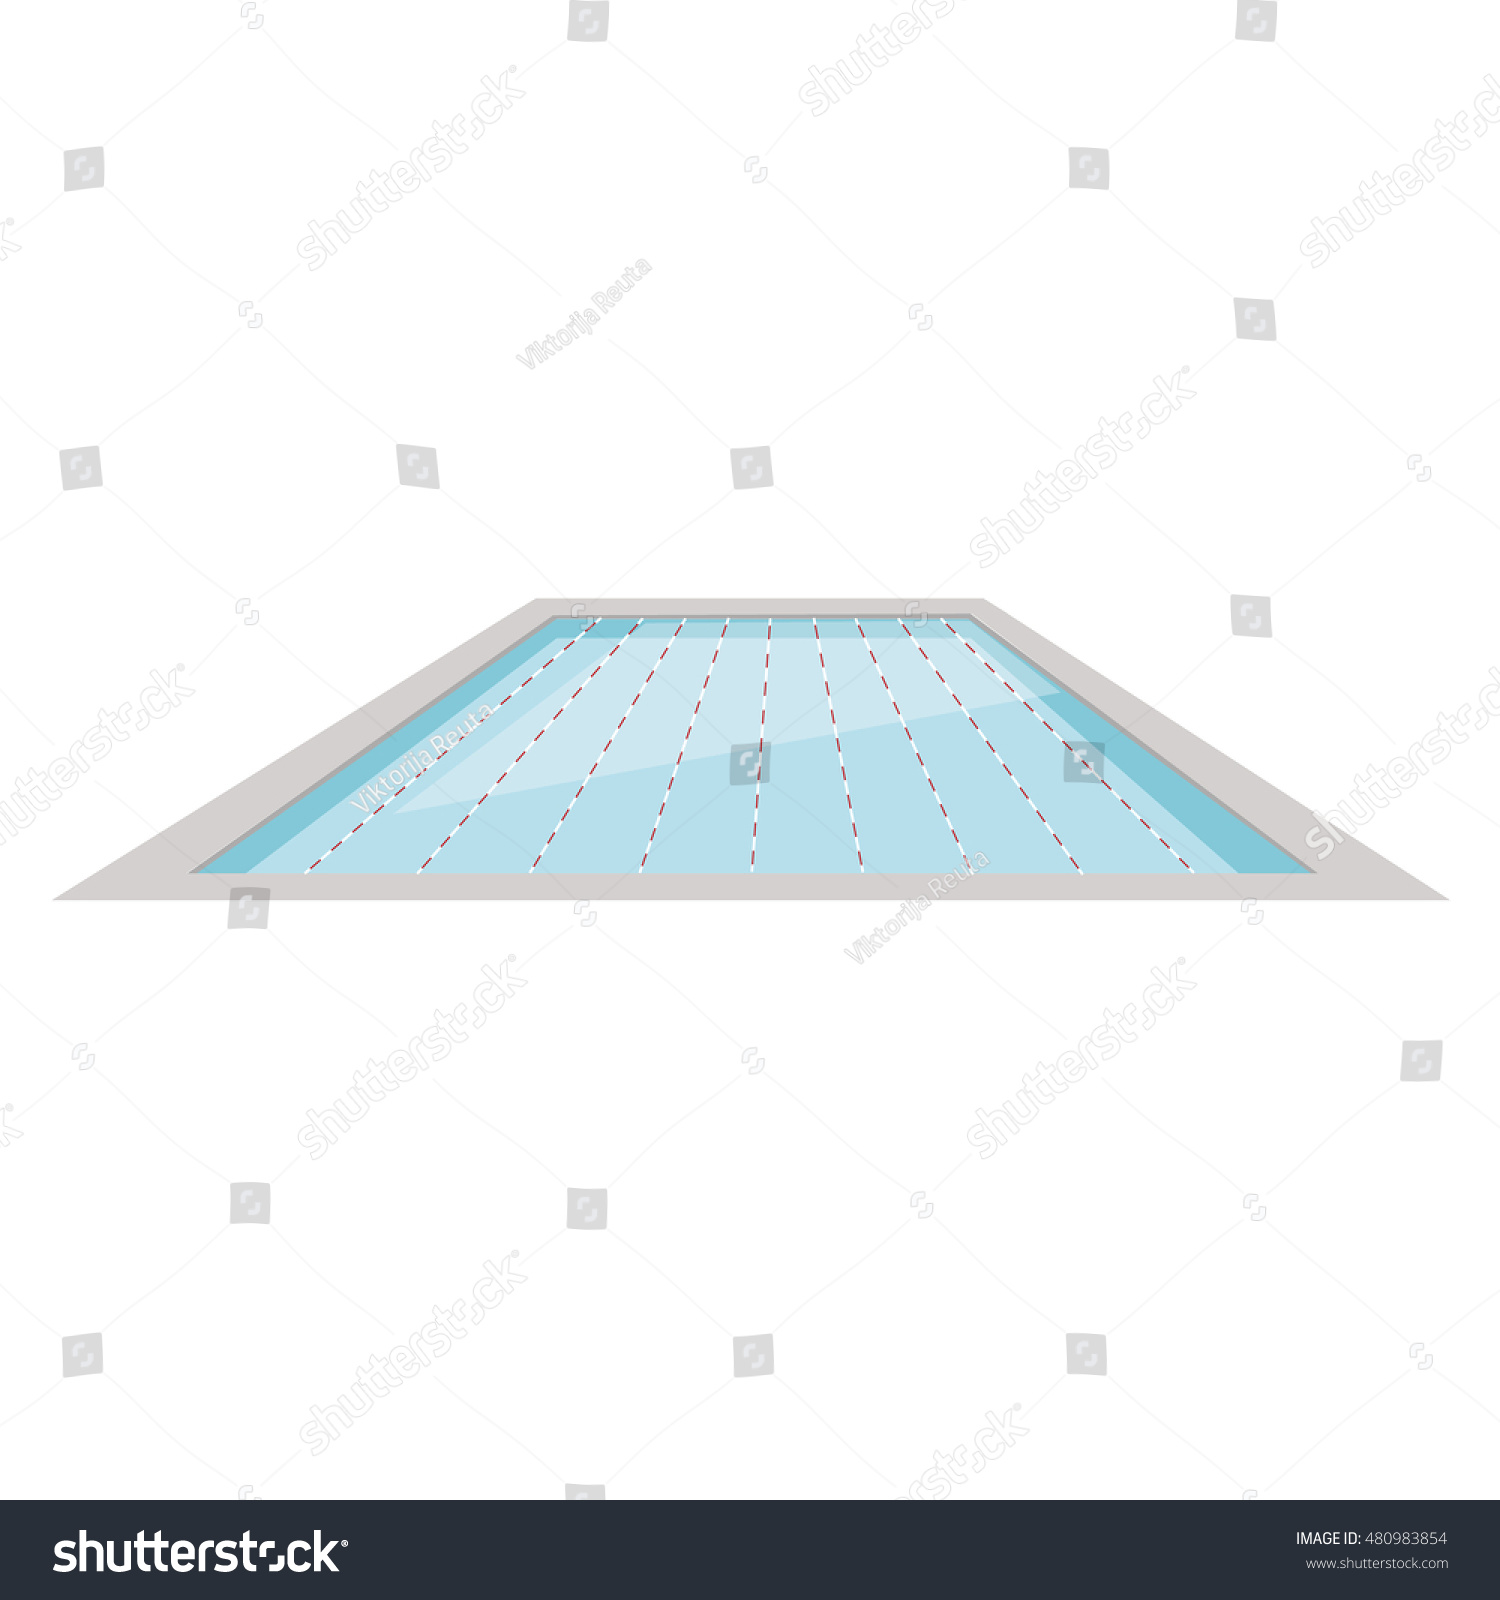 vector illustration olympic swimming pool sport and recreation healthy life style fitness